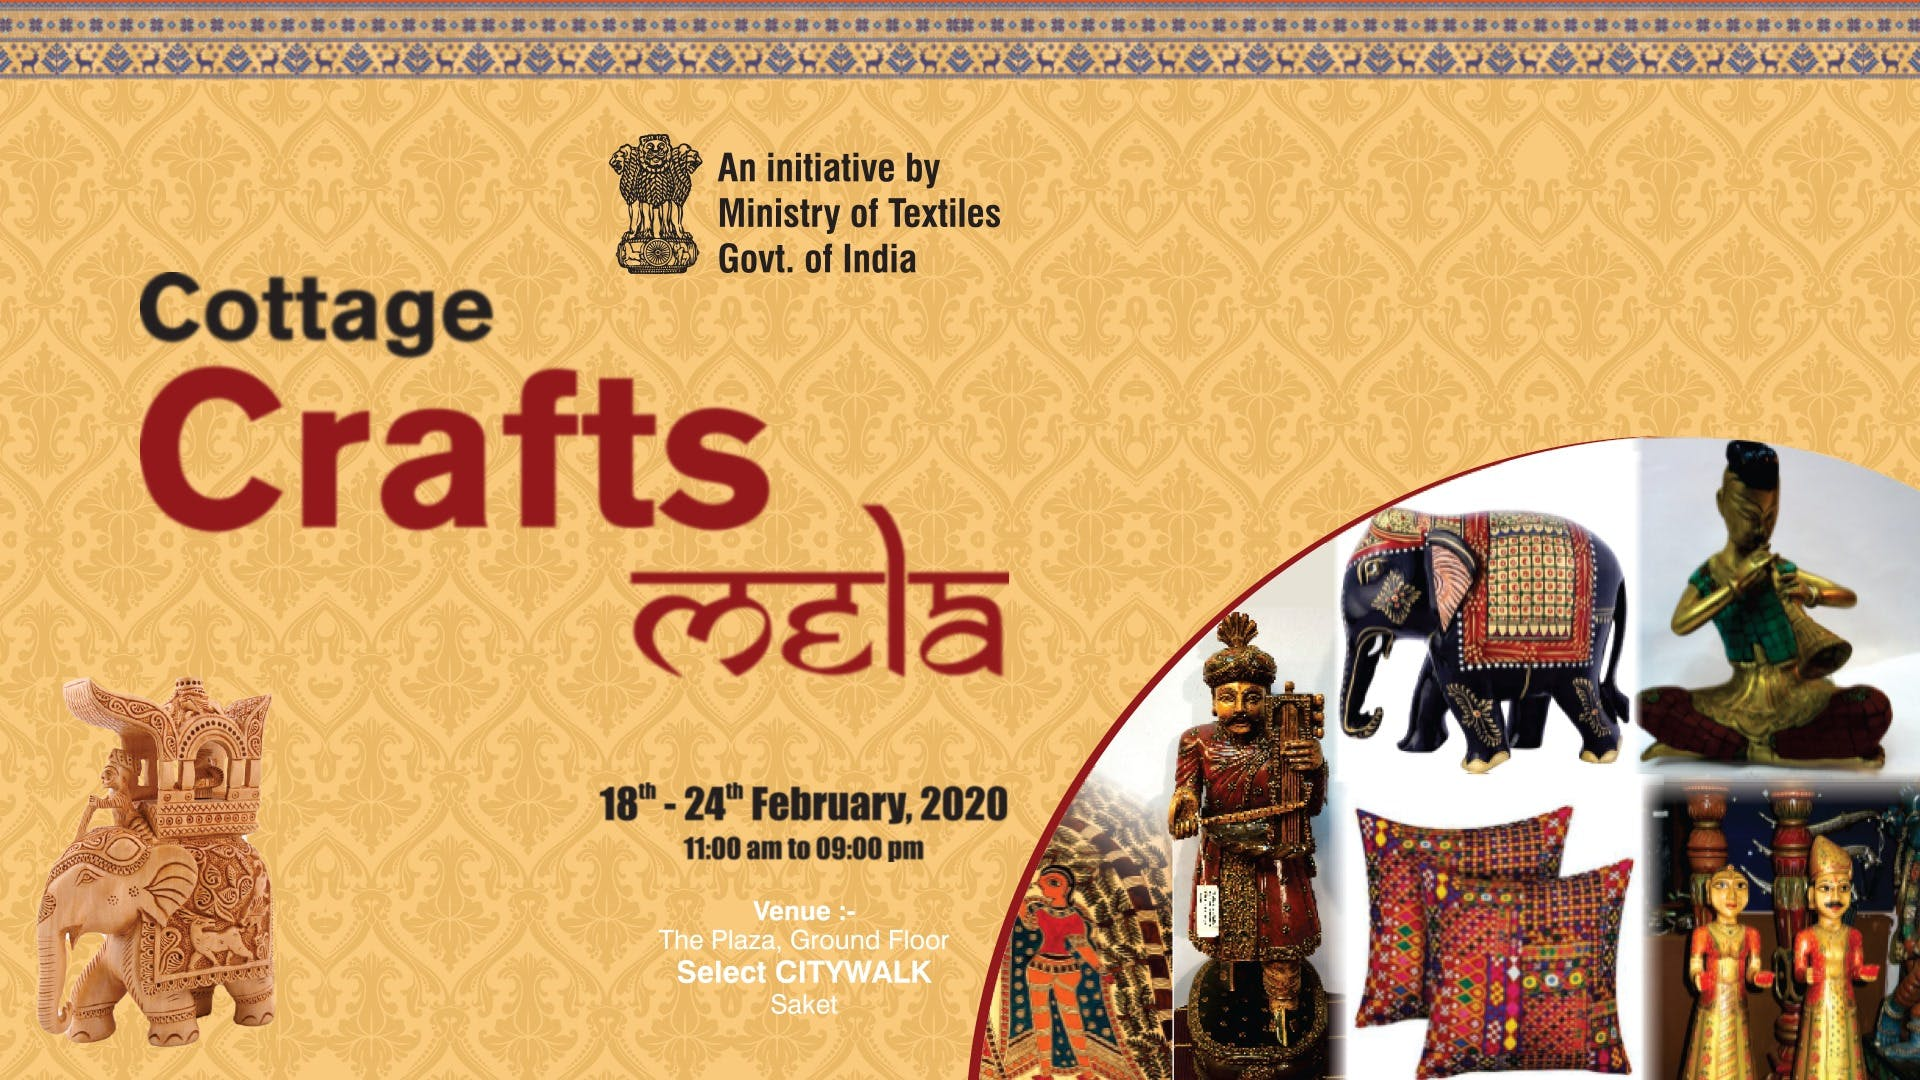 image - Crafting Yarns Of Happiness For You! The Cottage Crafts Mela Is Back With So Much More This February!